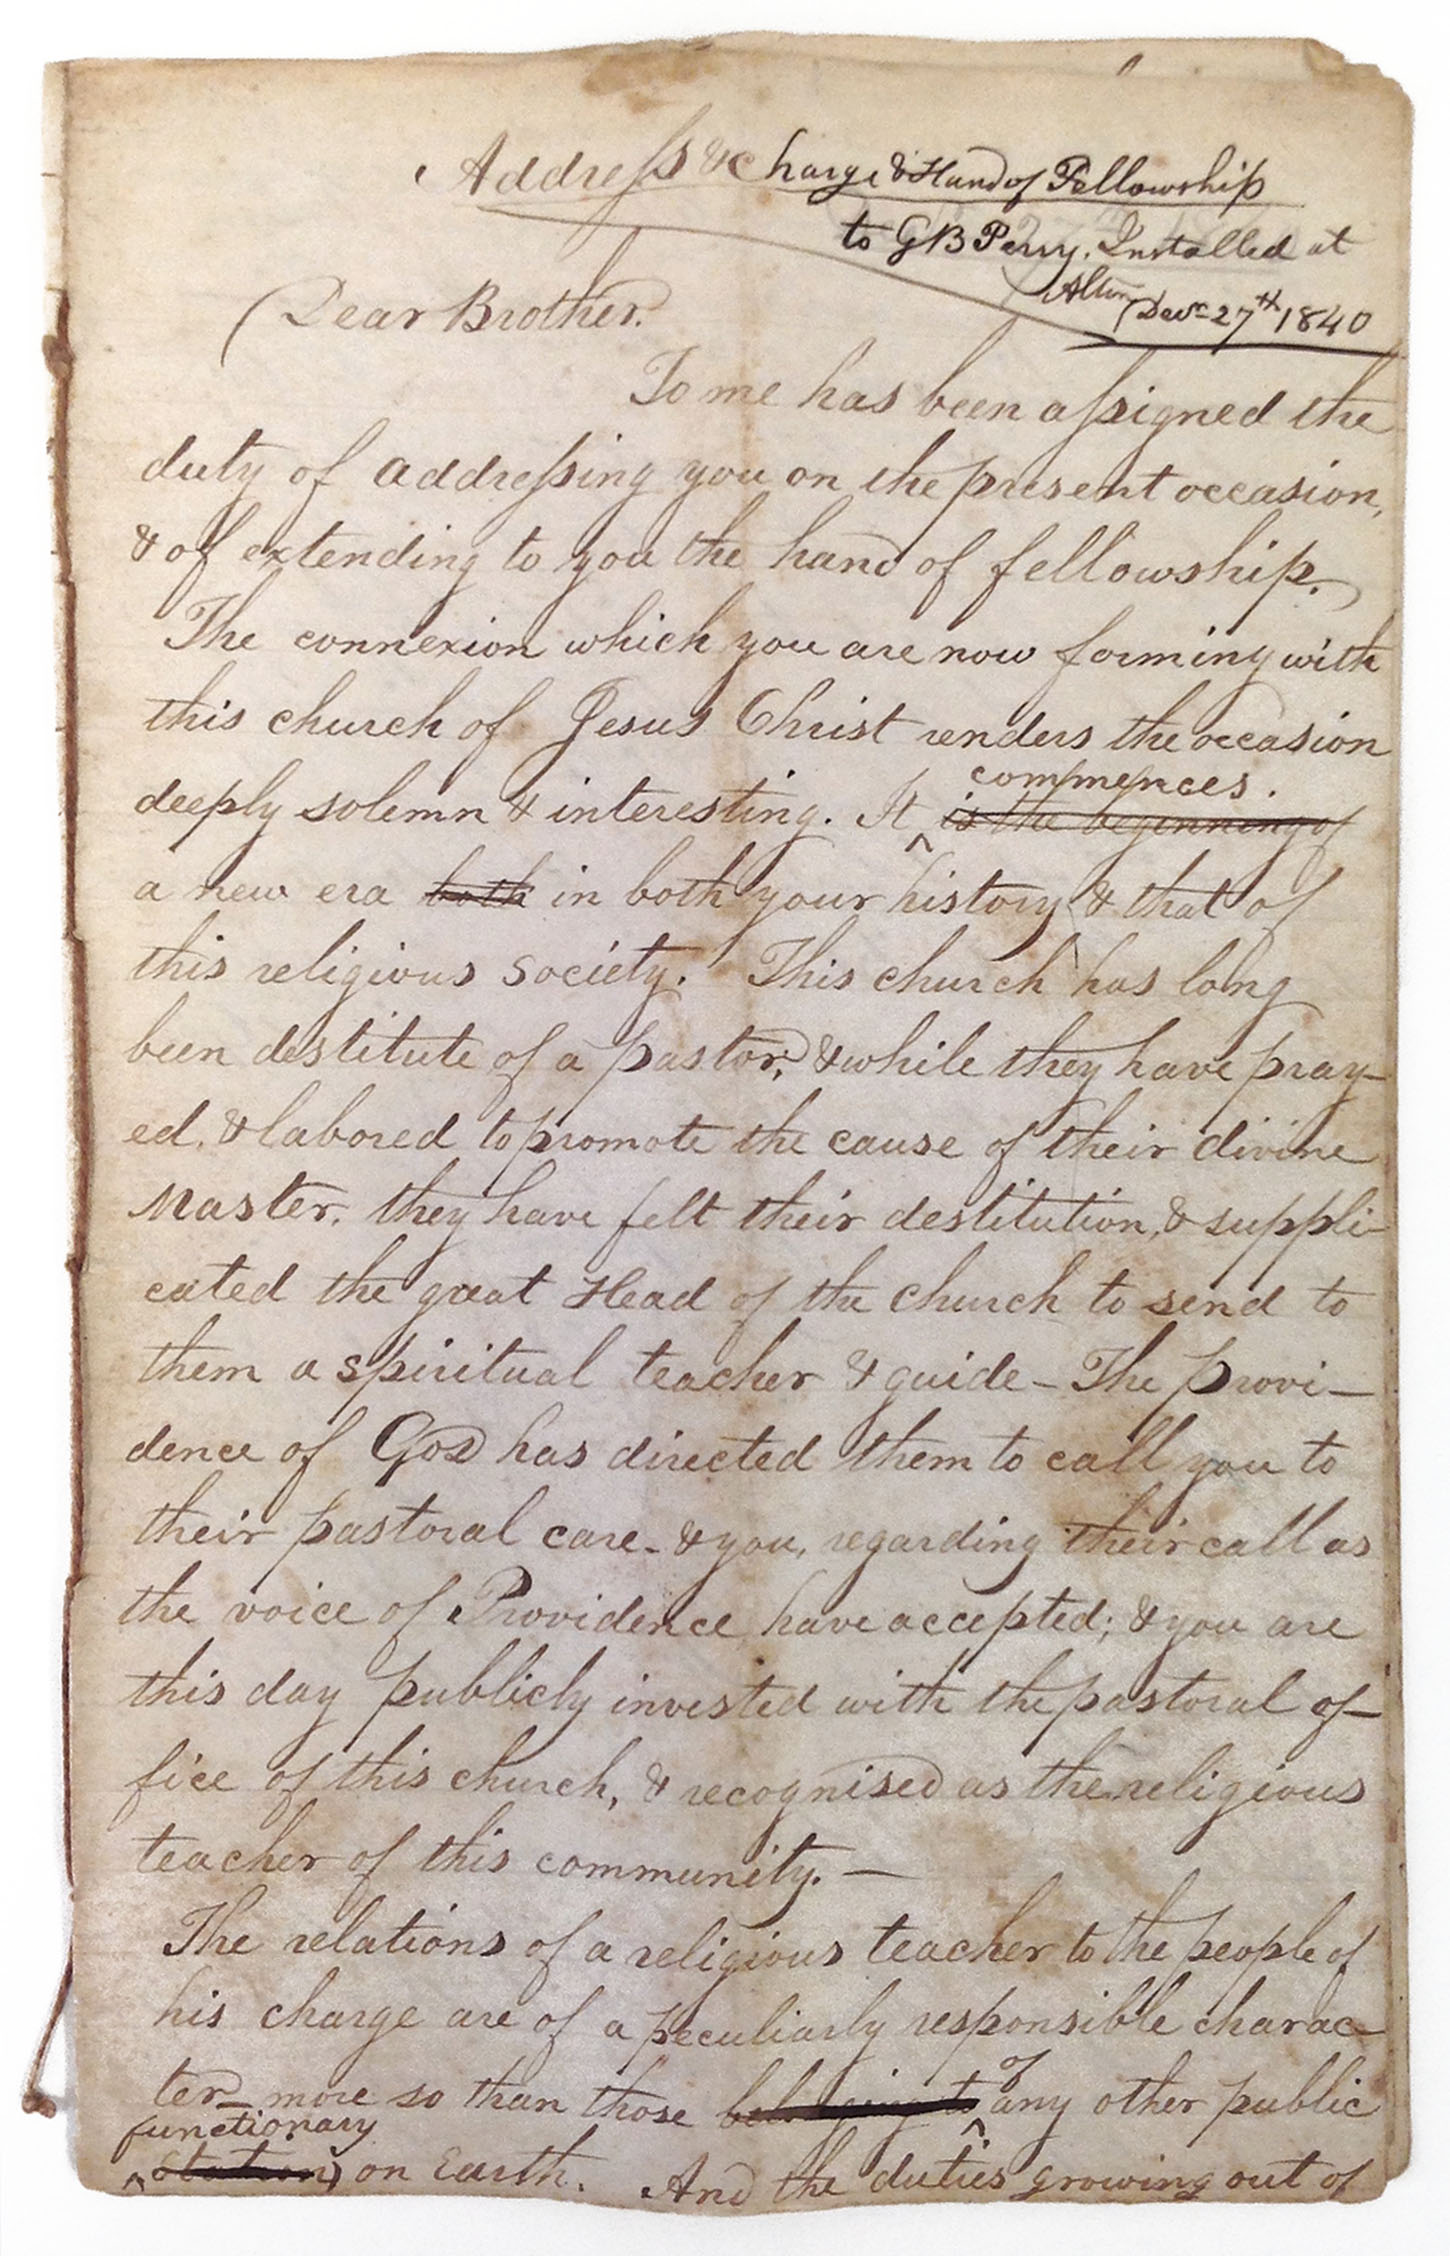 First page of Washington Leverett's address for the installation of a pastor, 1840.